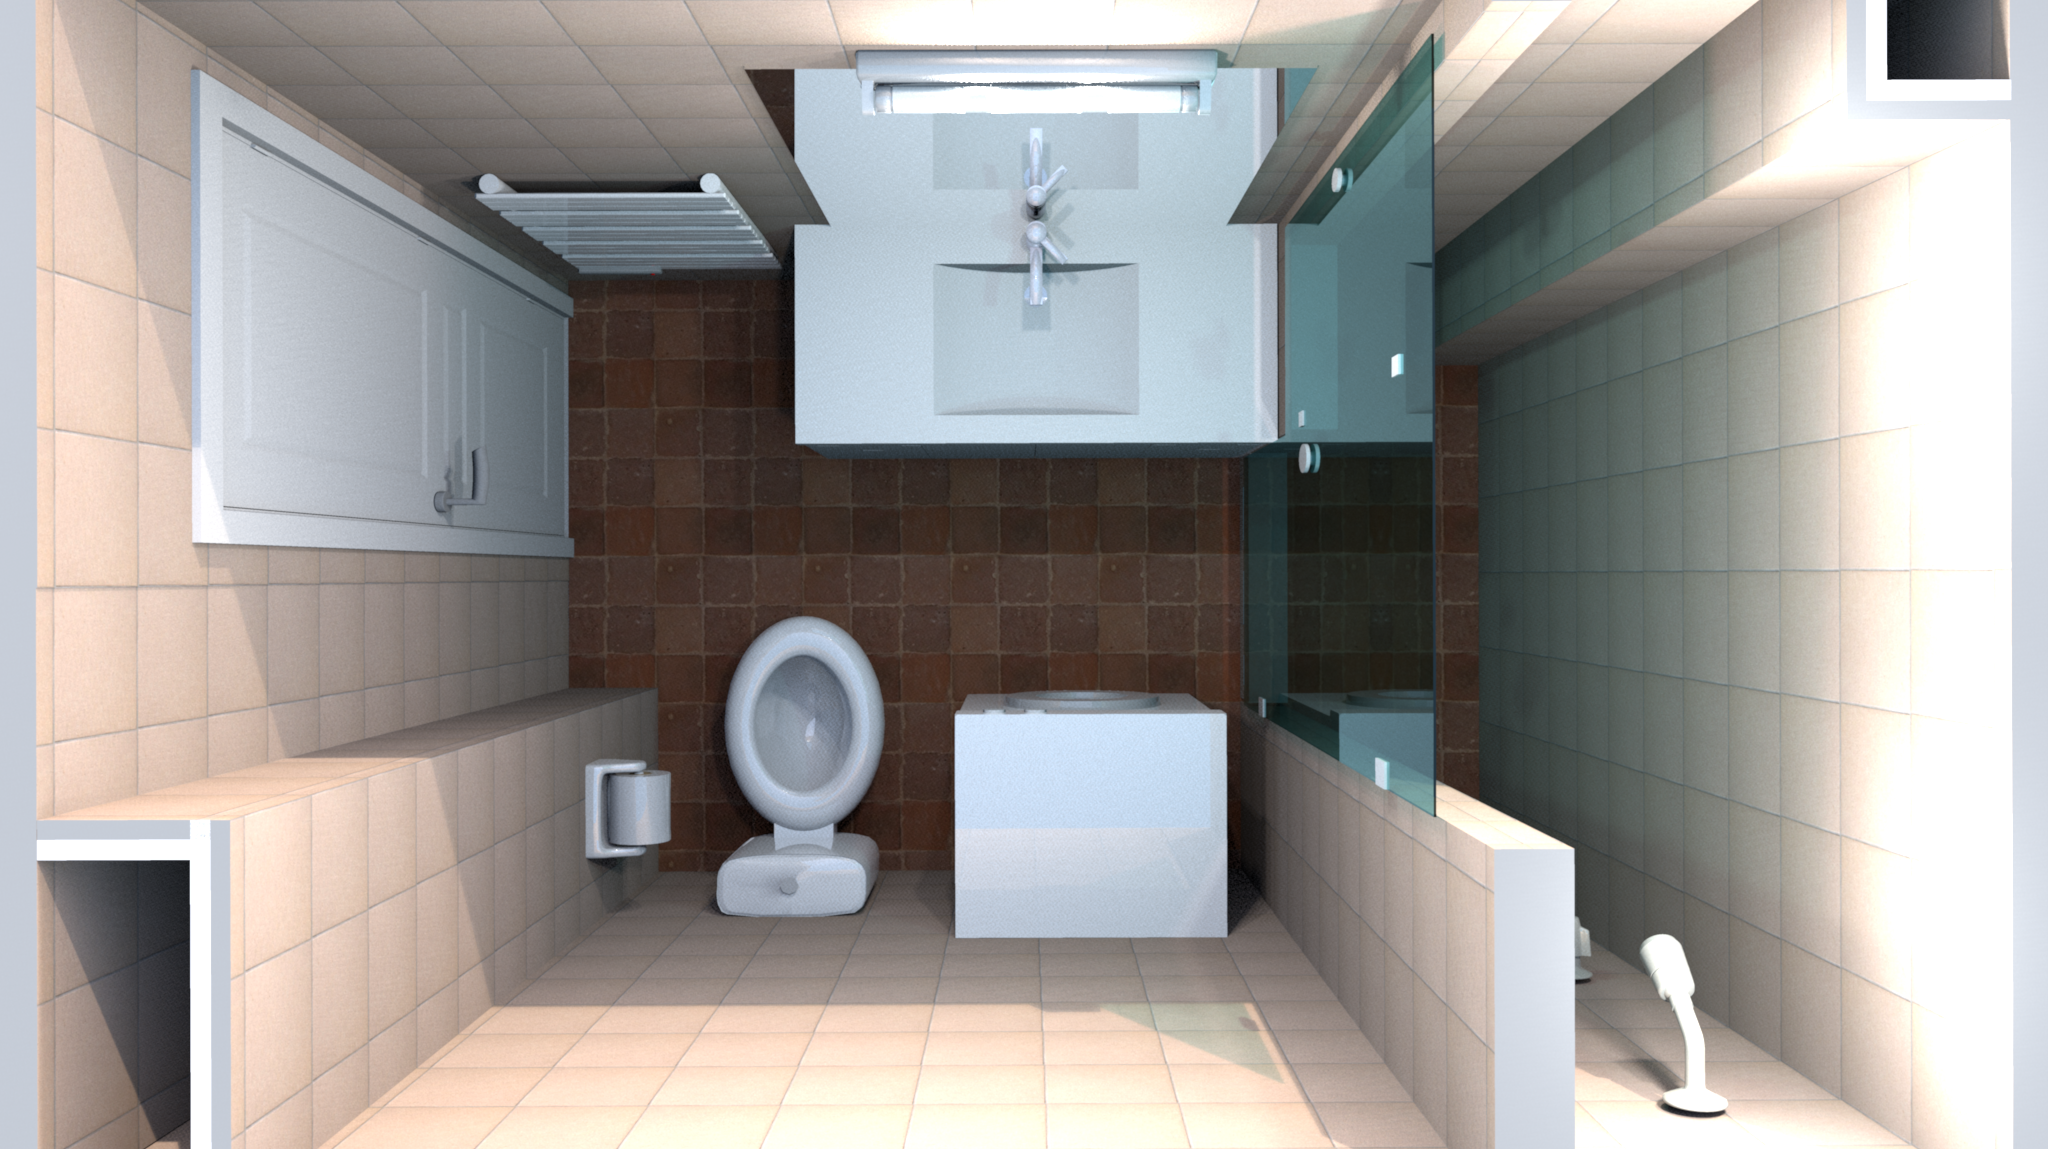 Ordinaire Small Bathroom Solution With Big Shower Spot For Two